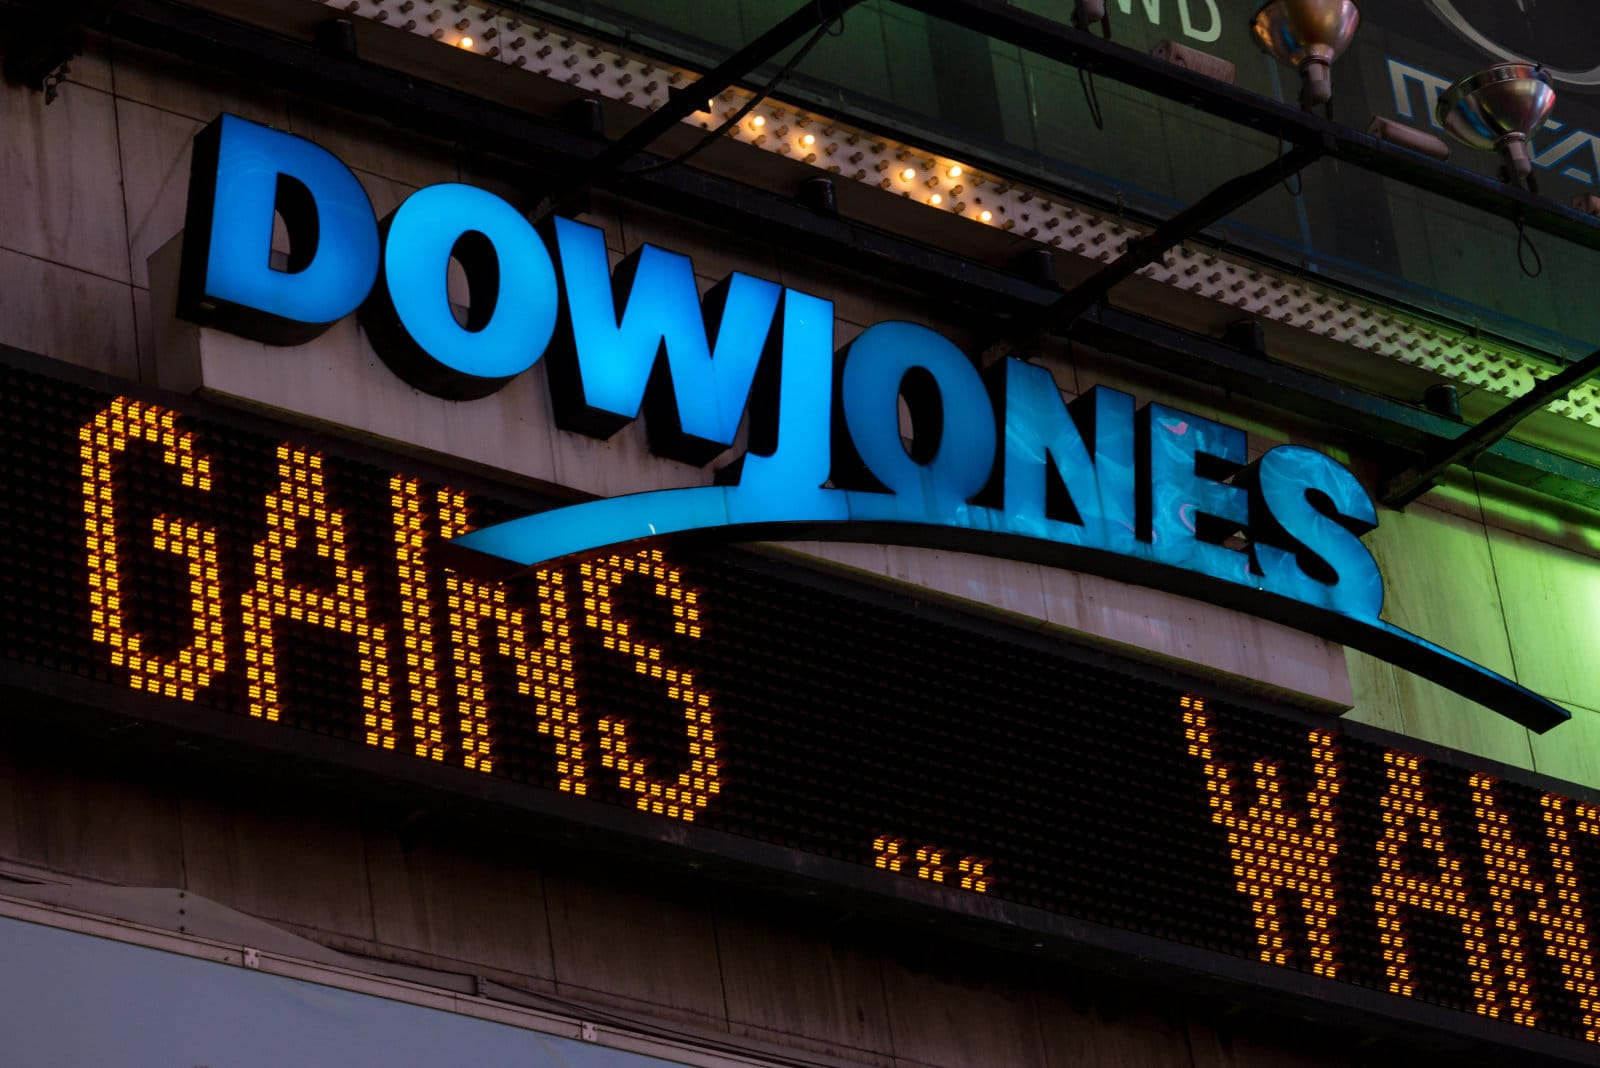 Dow Jones wiped out almost 400 points, falling below the 26,000-point threshold